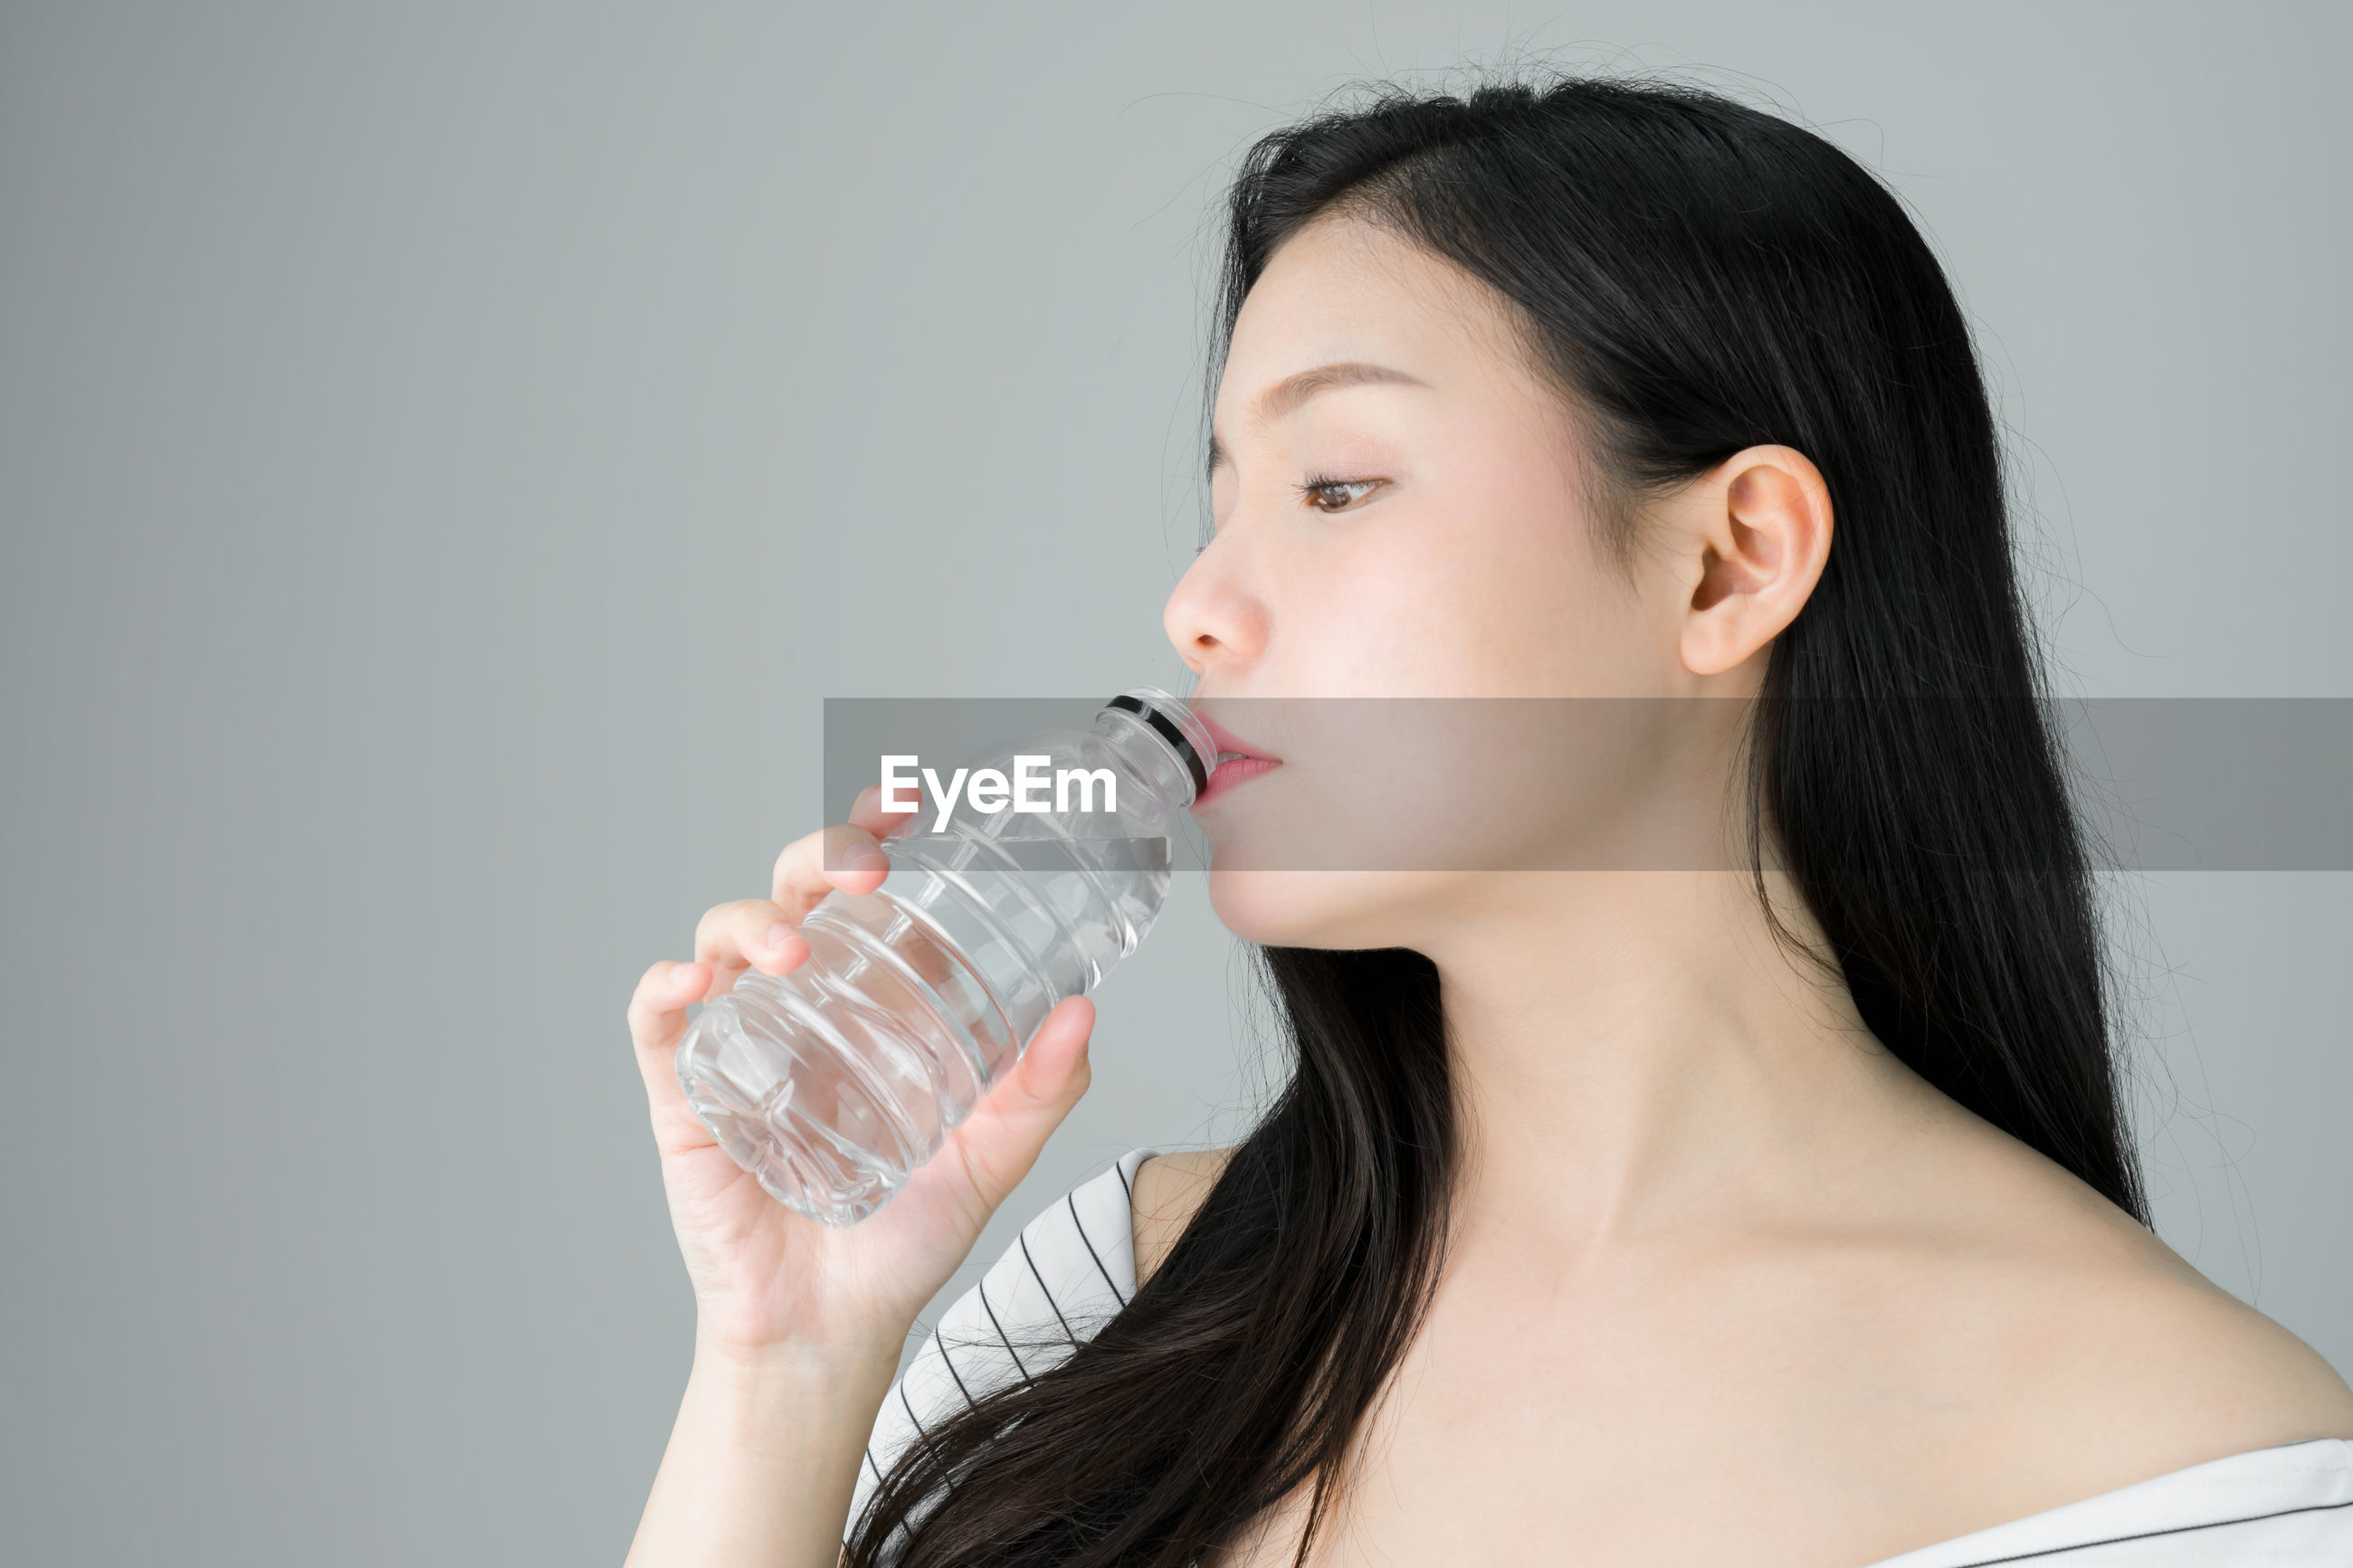 Woman drinking water from bottle against gray background